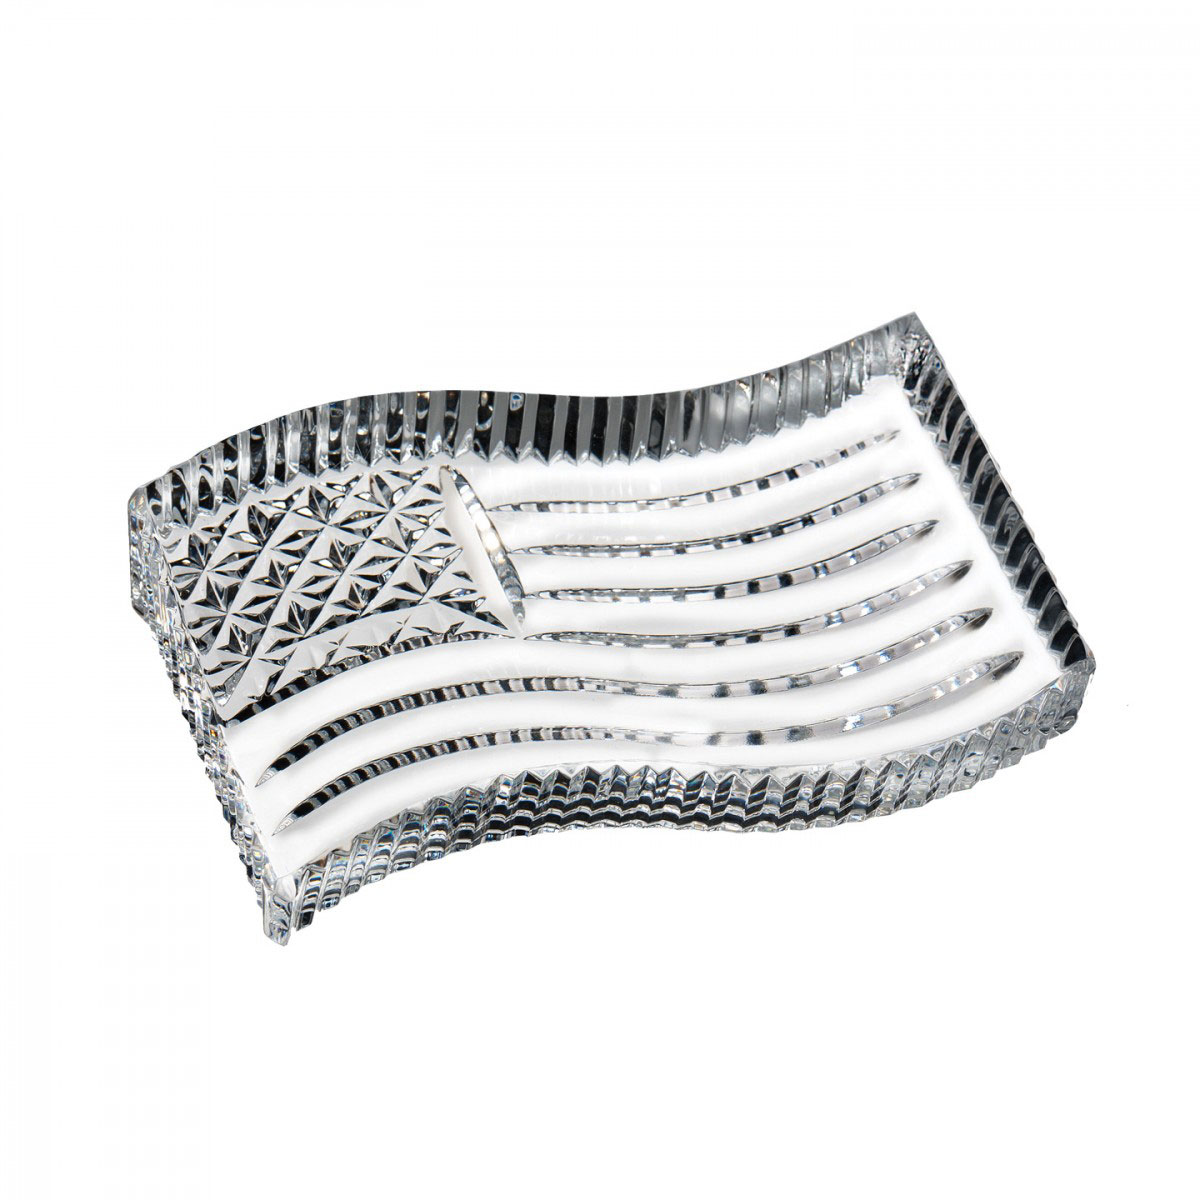 Waterford Crystal, American Flag Crystal Paperweight